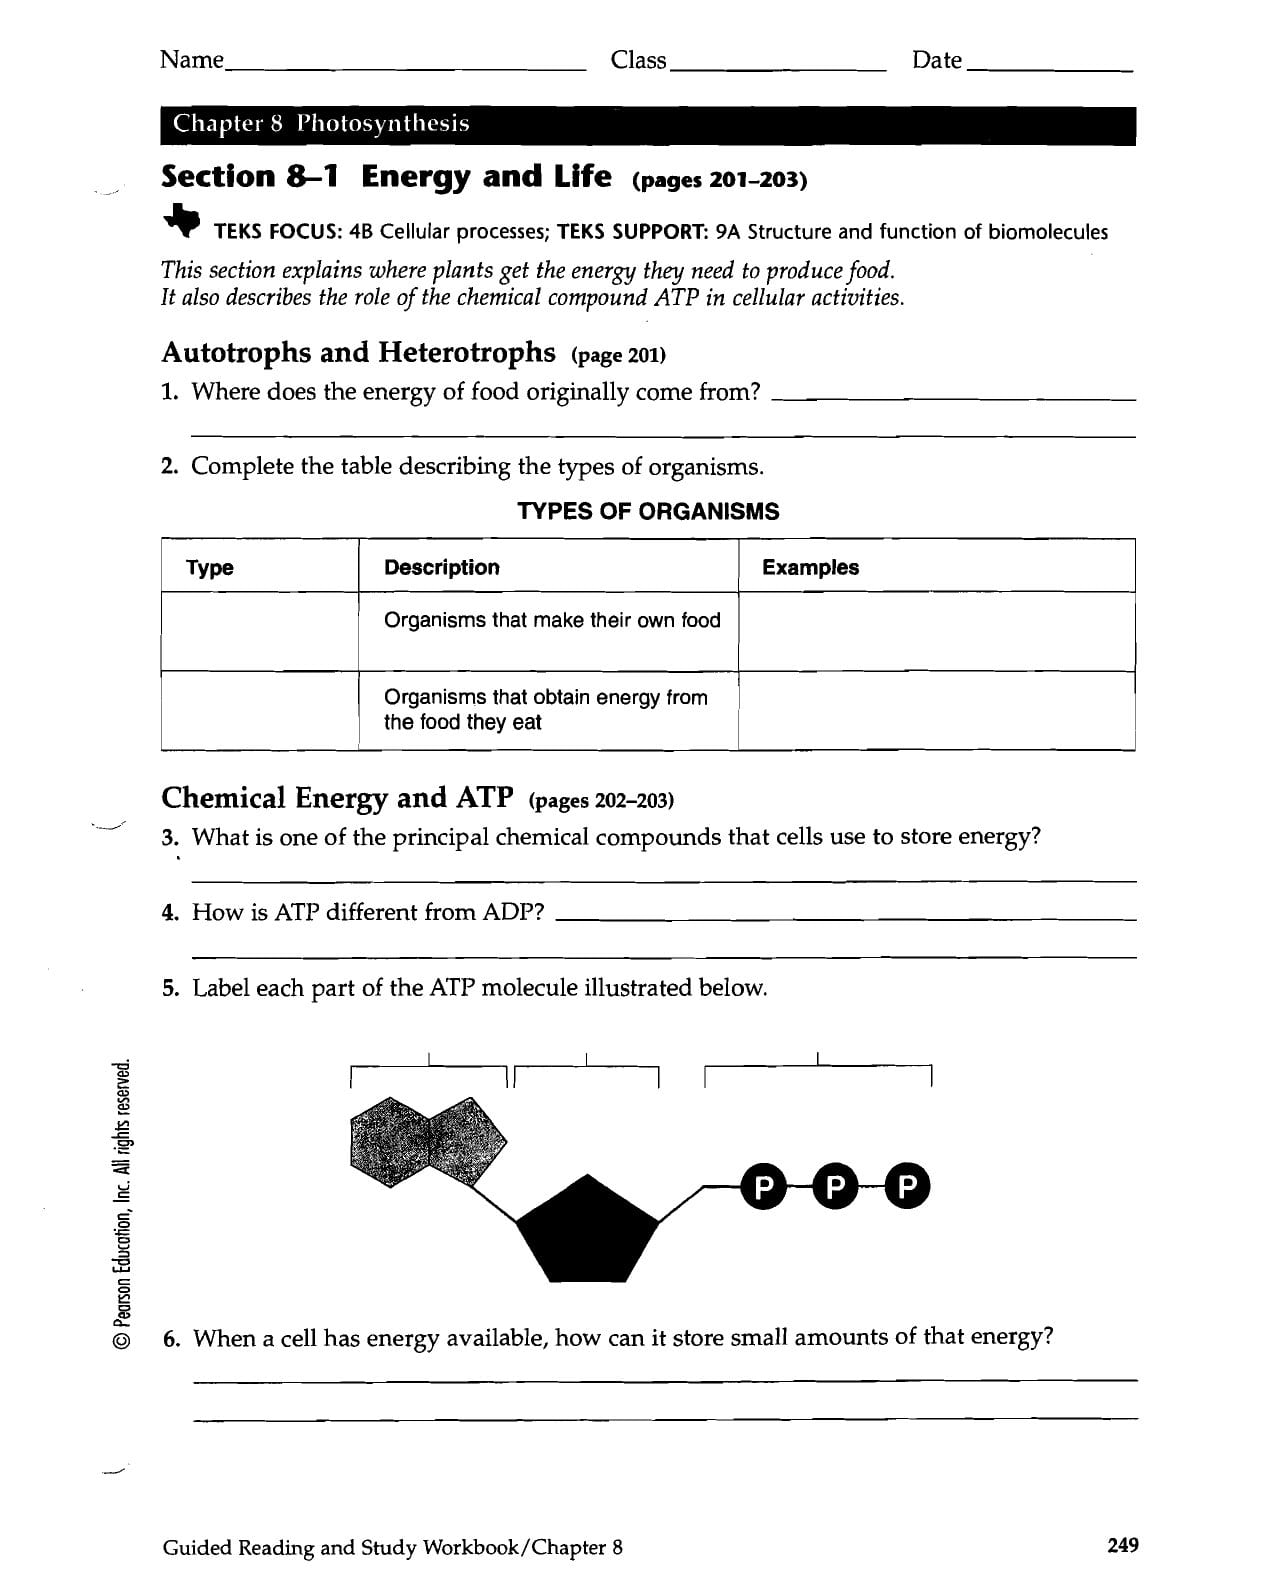 8 1 Energy And Life Worksheet Answer Key — excelguider.com